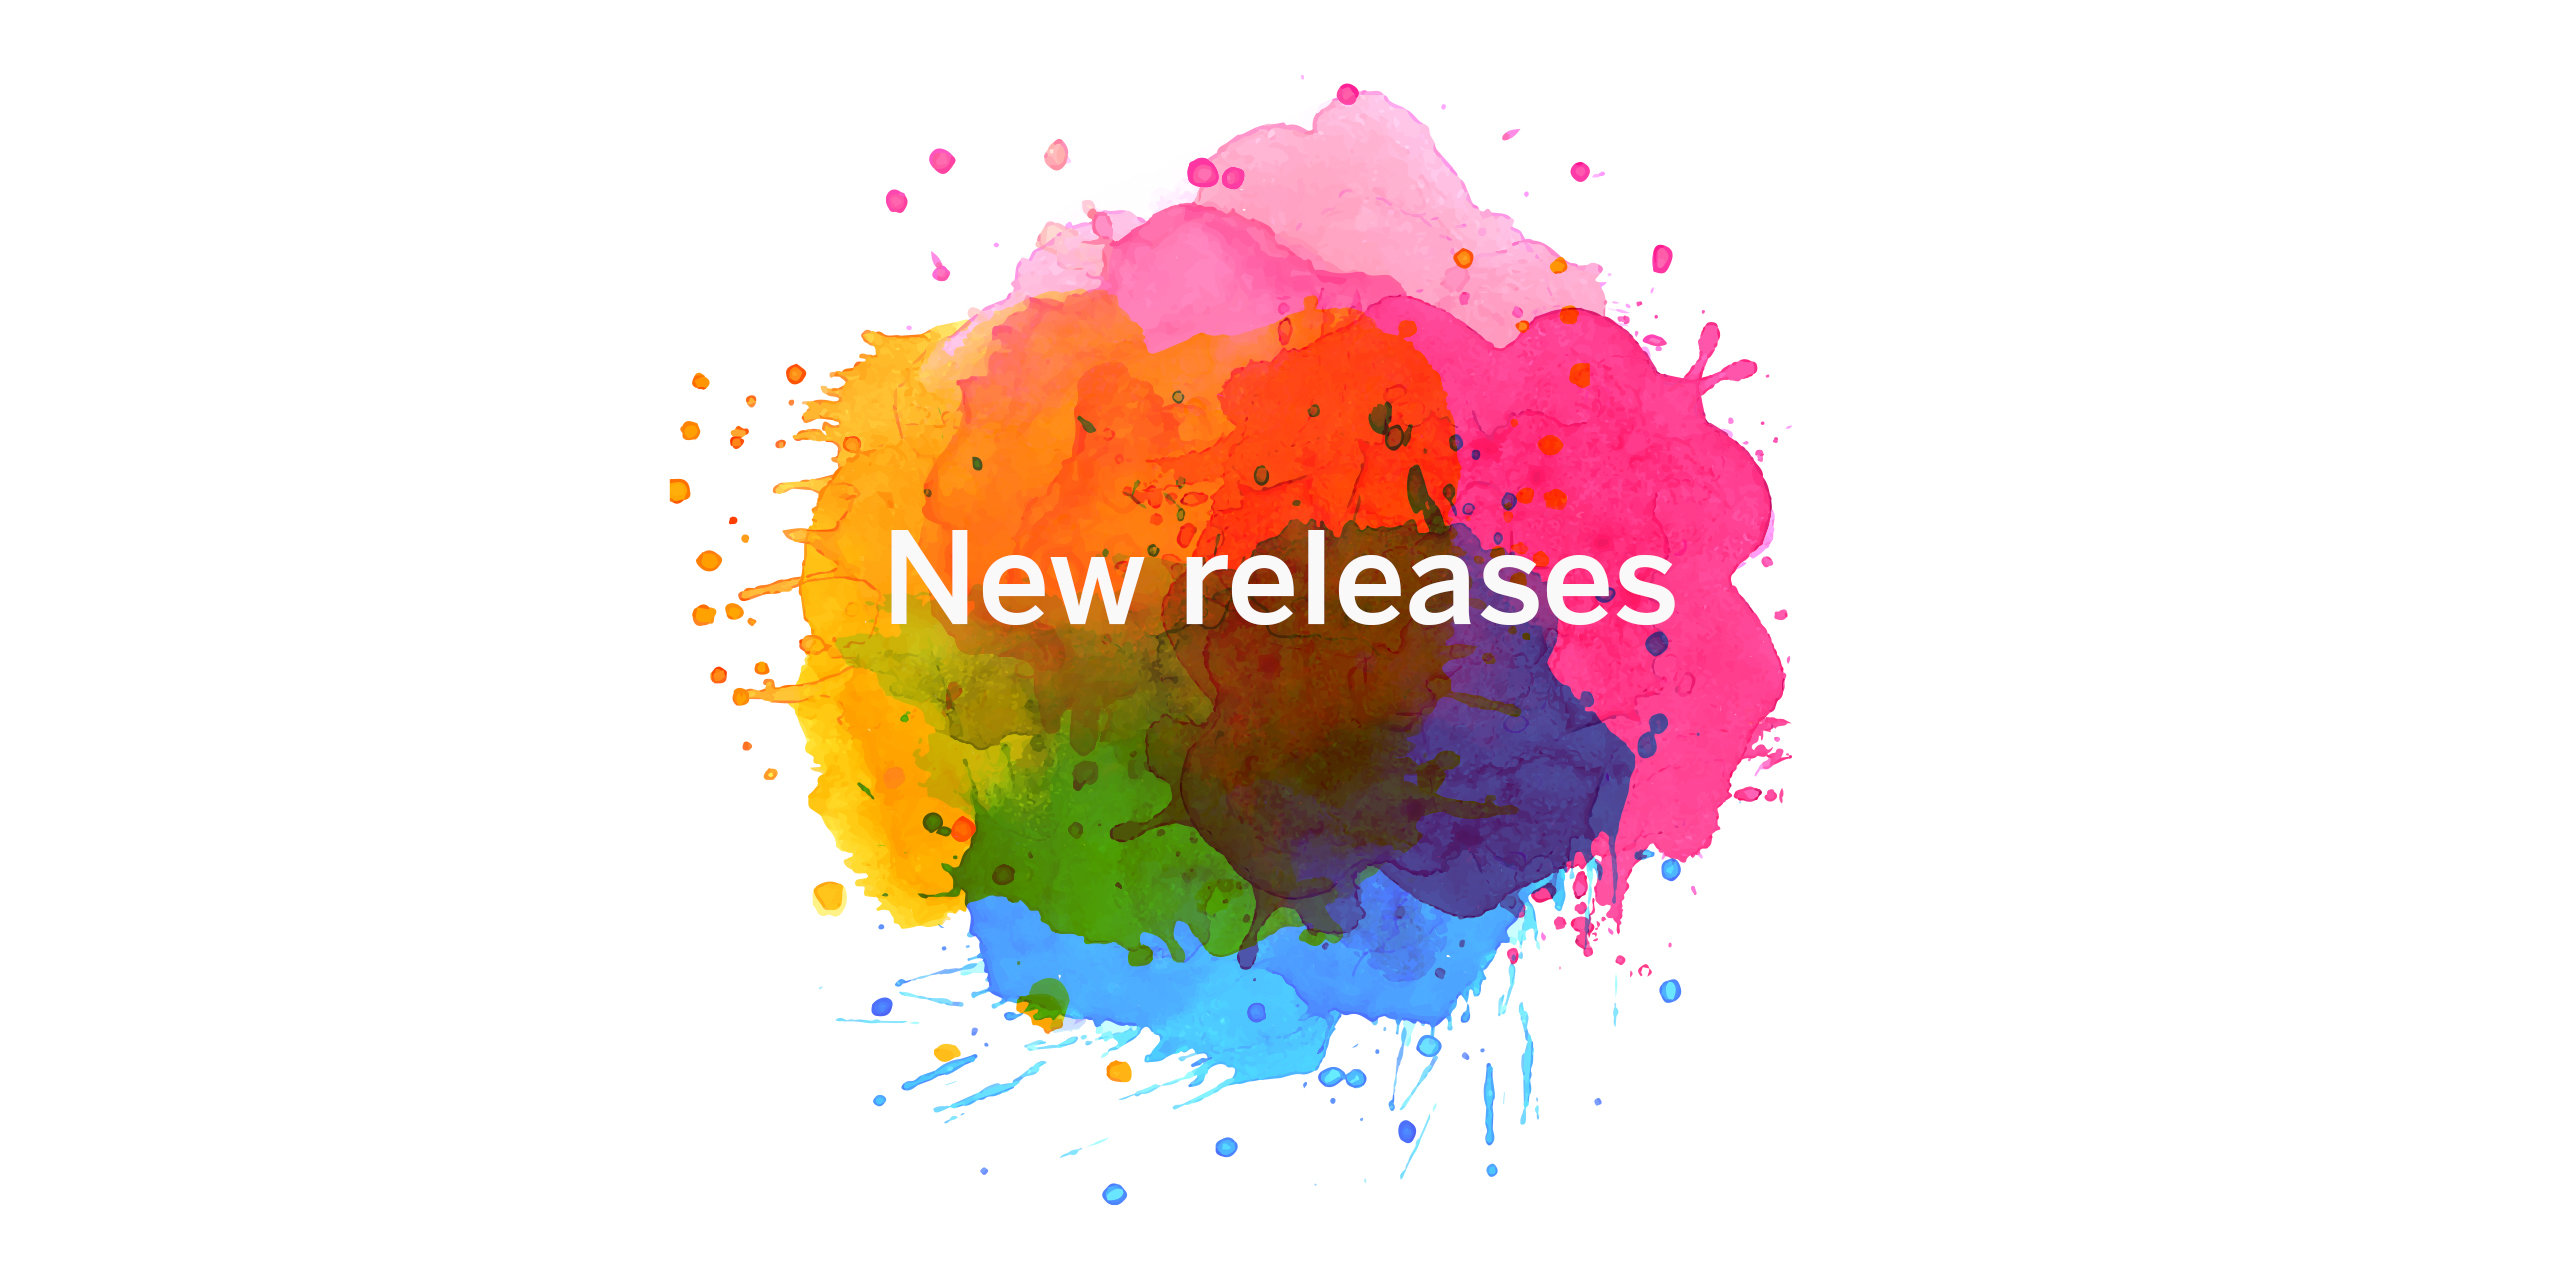 What are the new releases